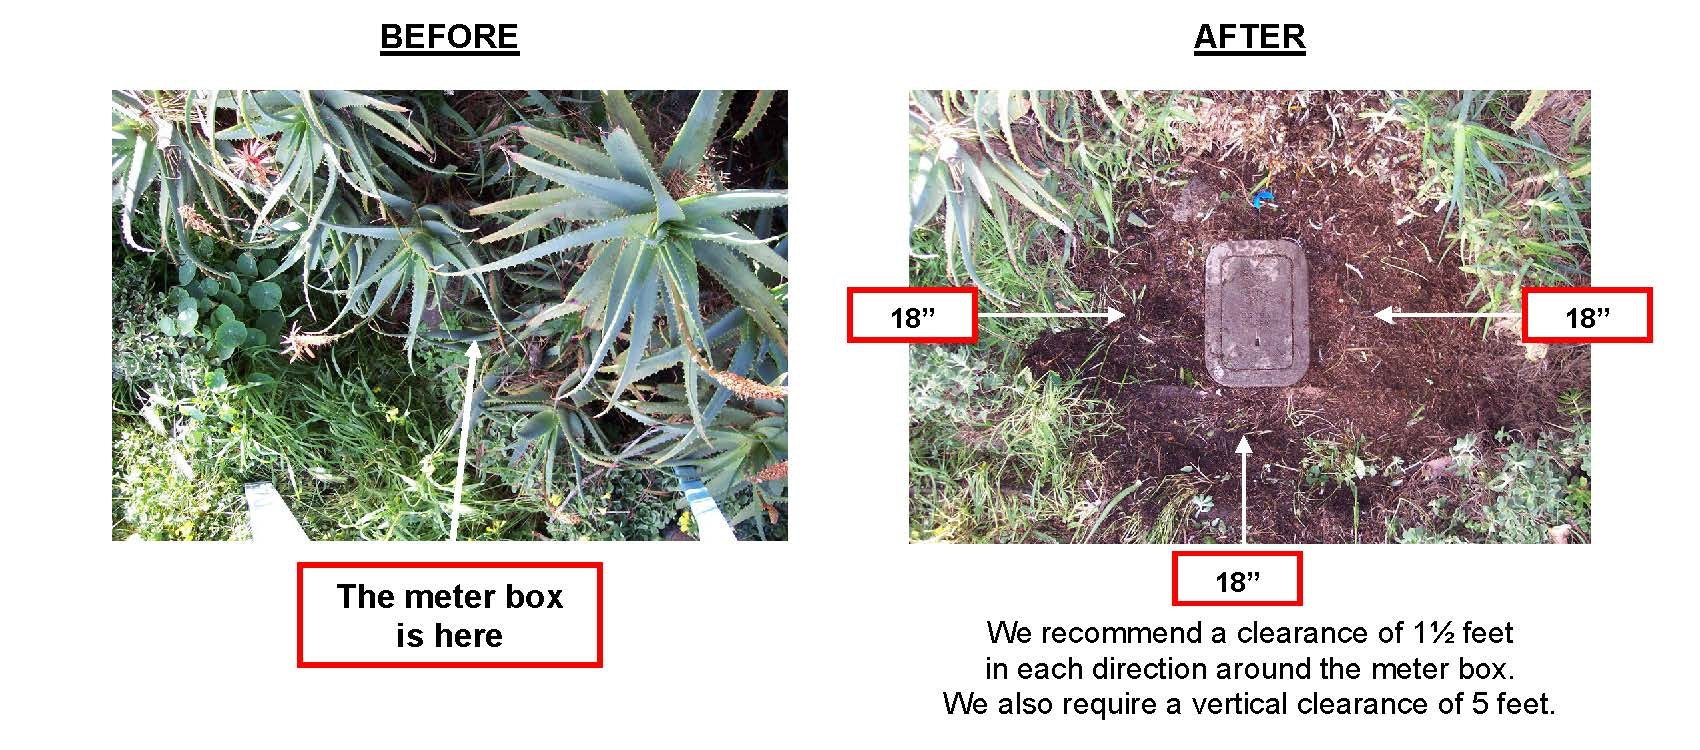 Contains: plant, weeds, covered water meter box, uncovered meter box, Before and After Picture of cleared meter box